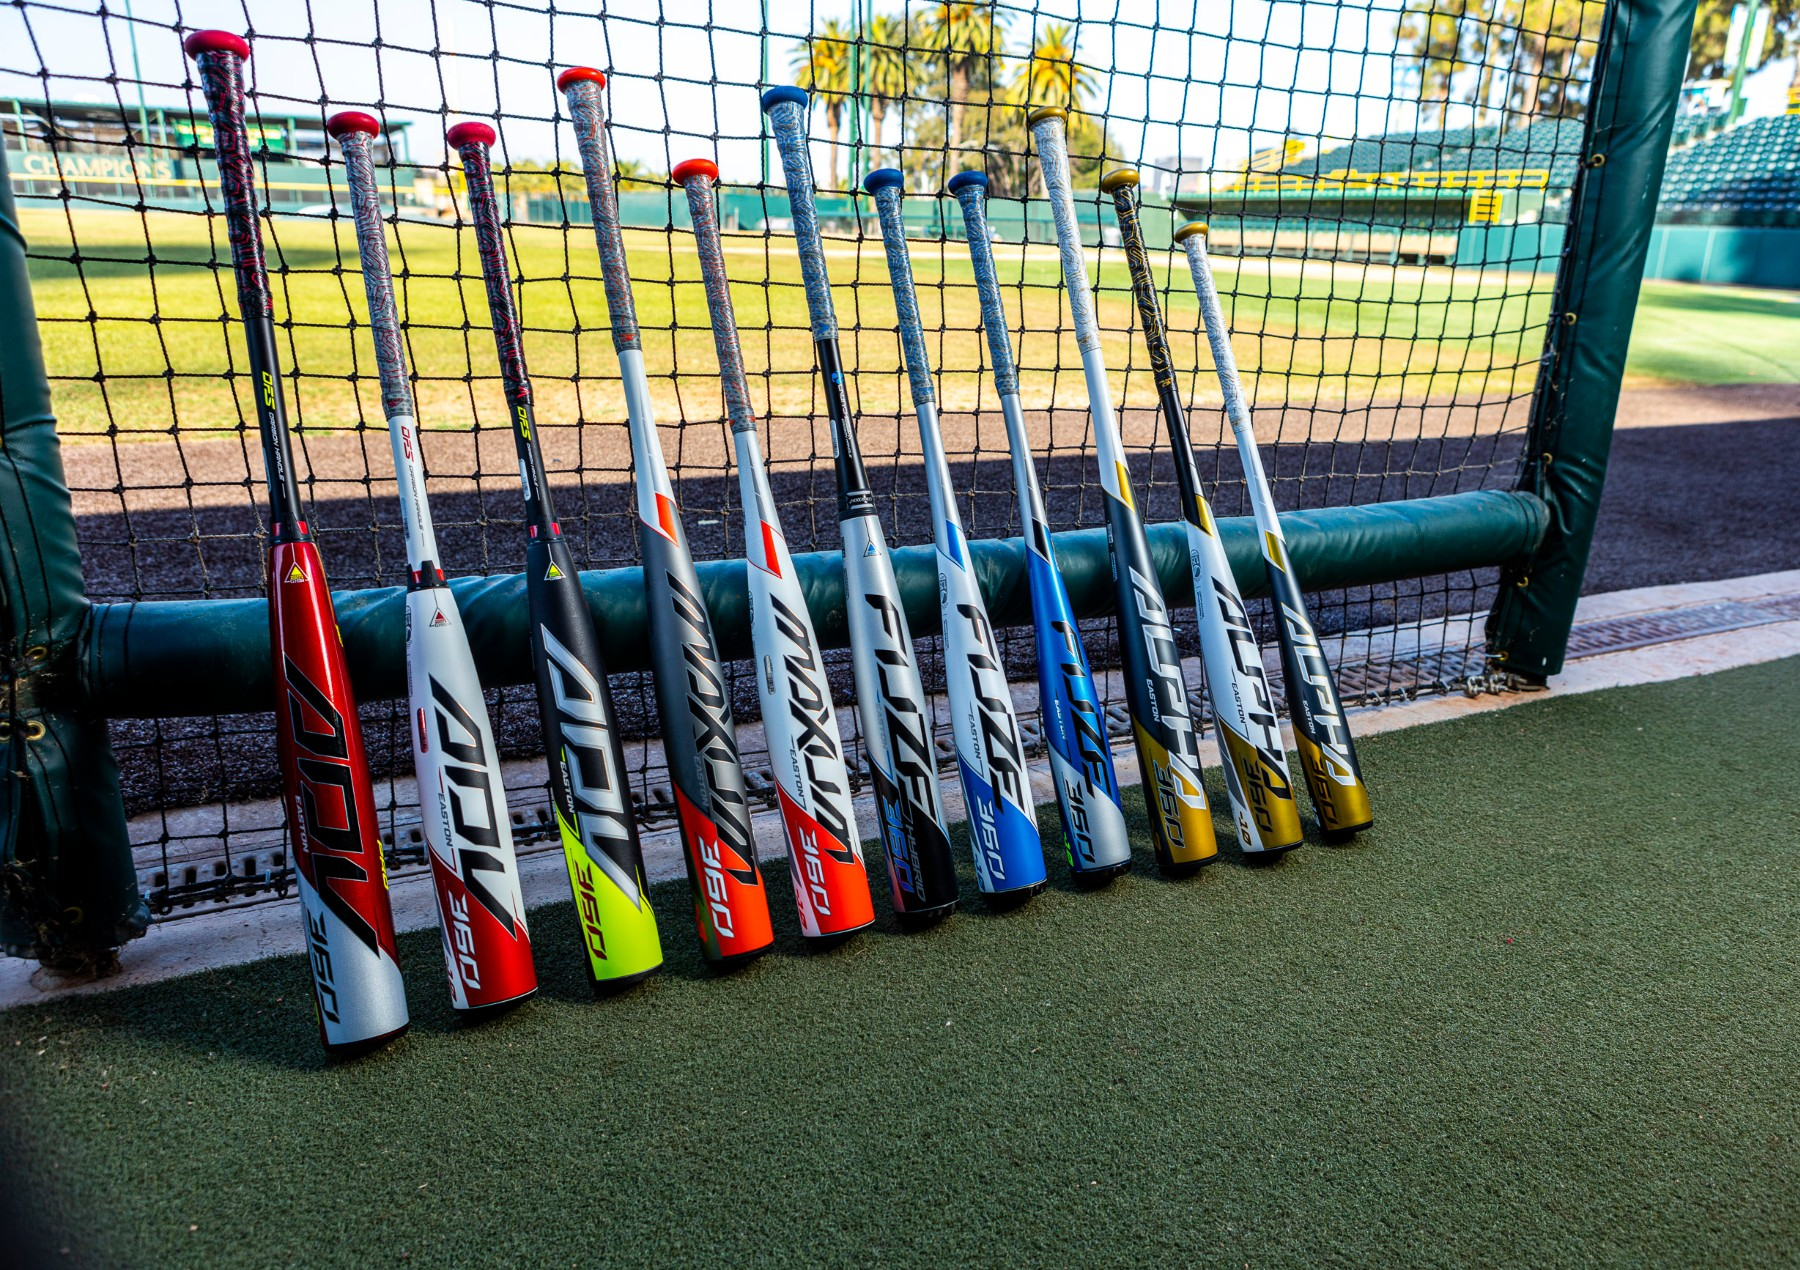 Easton Launches Four Bats for New 2020 Lineup